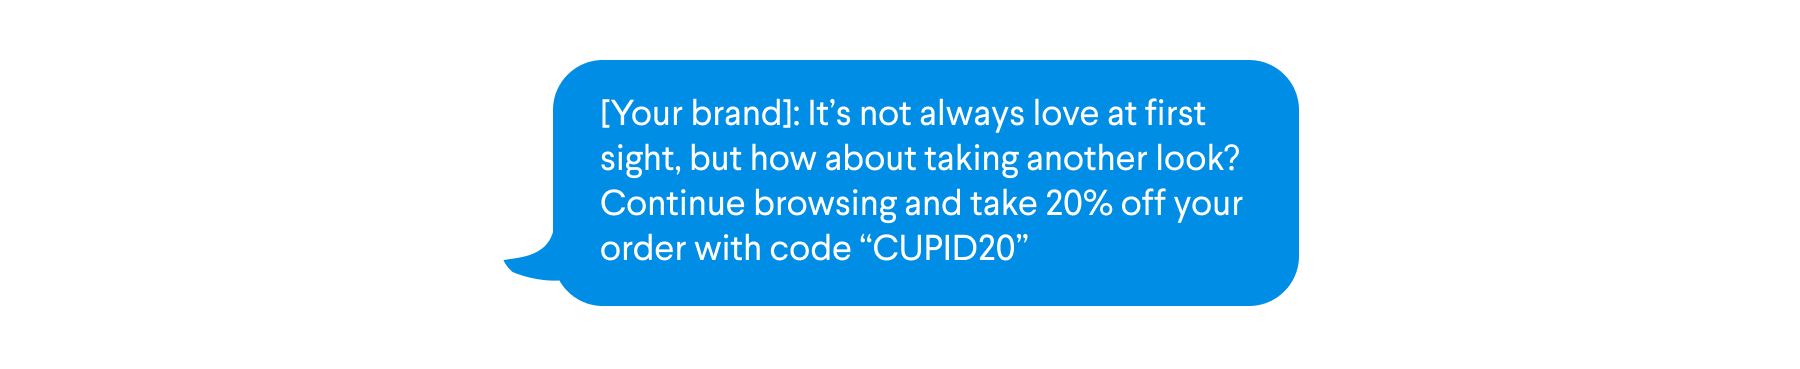 Sample text for SMS campaign to people who clicked but didn't purchase from Valentine's Day promo